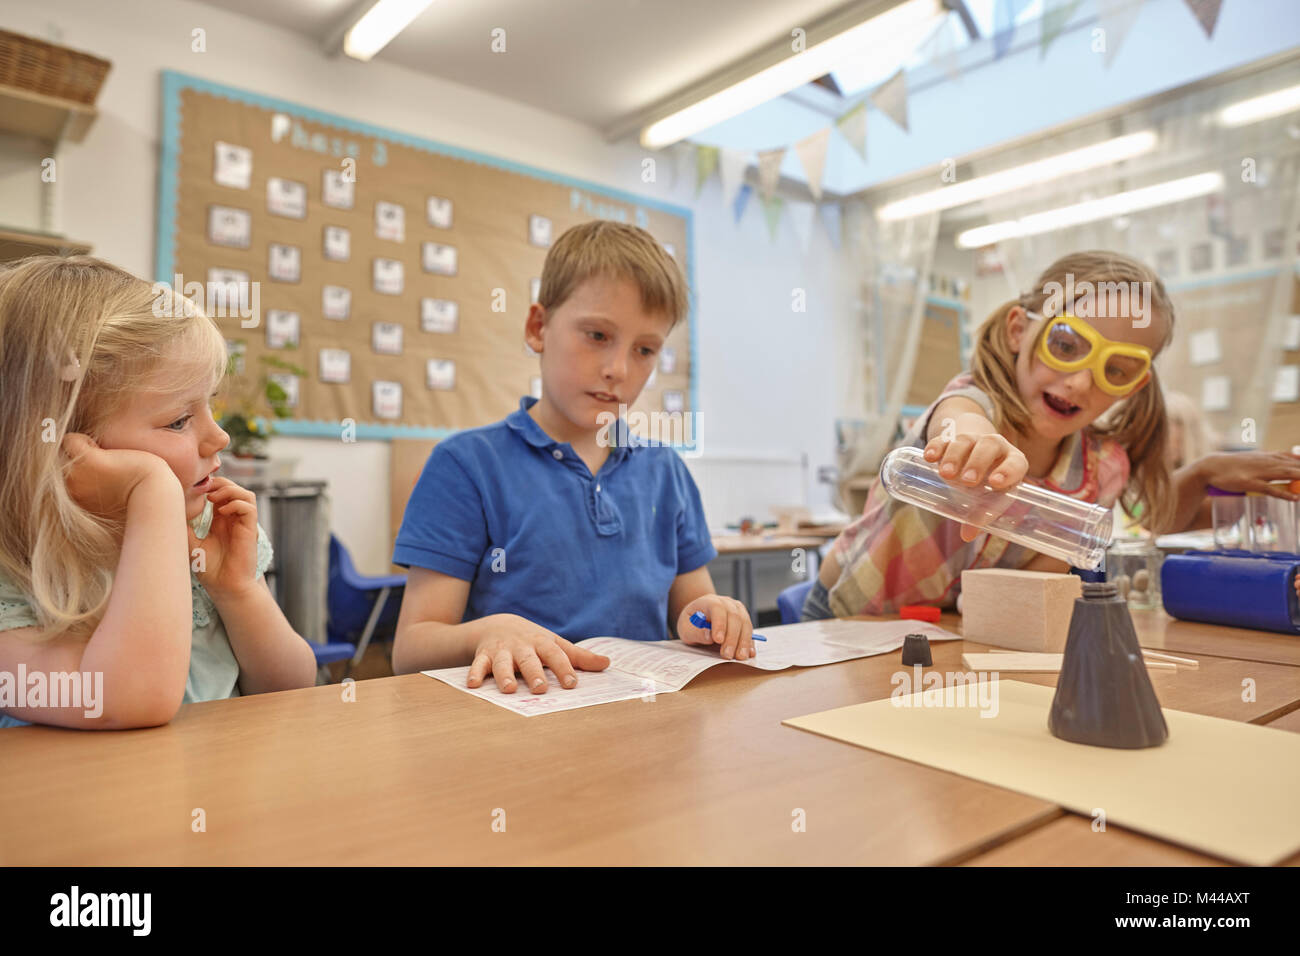 Primary schoolgirls and boy doing experiment at classroom desk - Stock Image